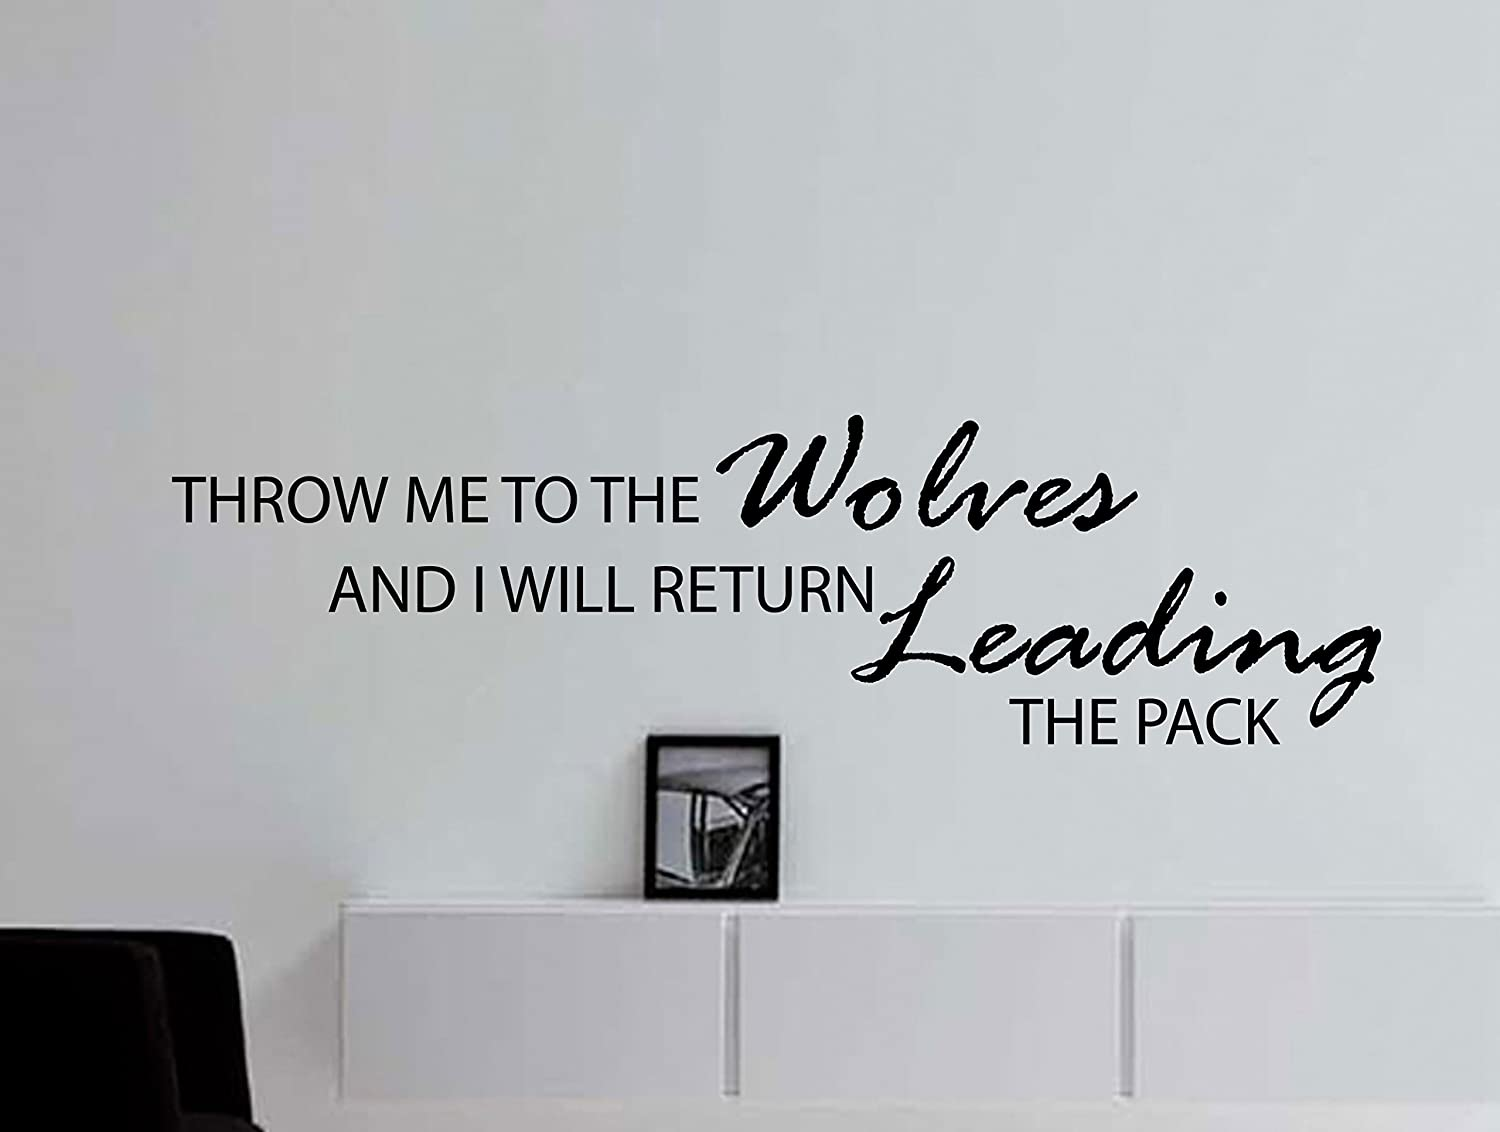 Amazon motivational inspiring quote wall decal throw me to amazon motivational inspiring quote wall decal throw me to the wolves and i will return leading the pack 42x12 inches home kitchen amipublicfo Images